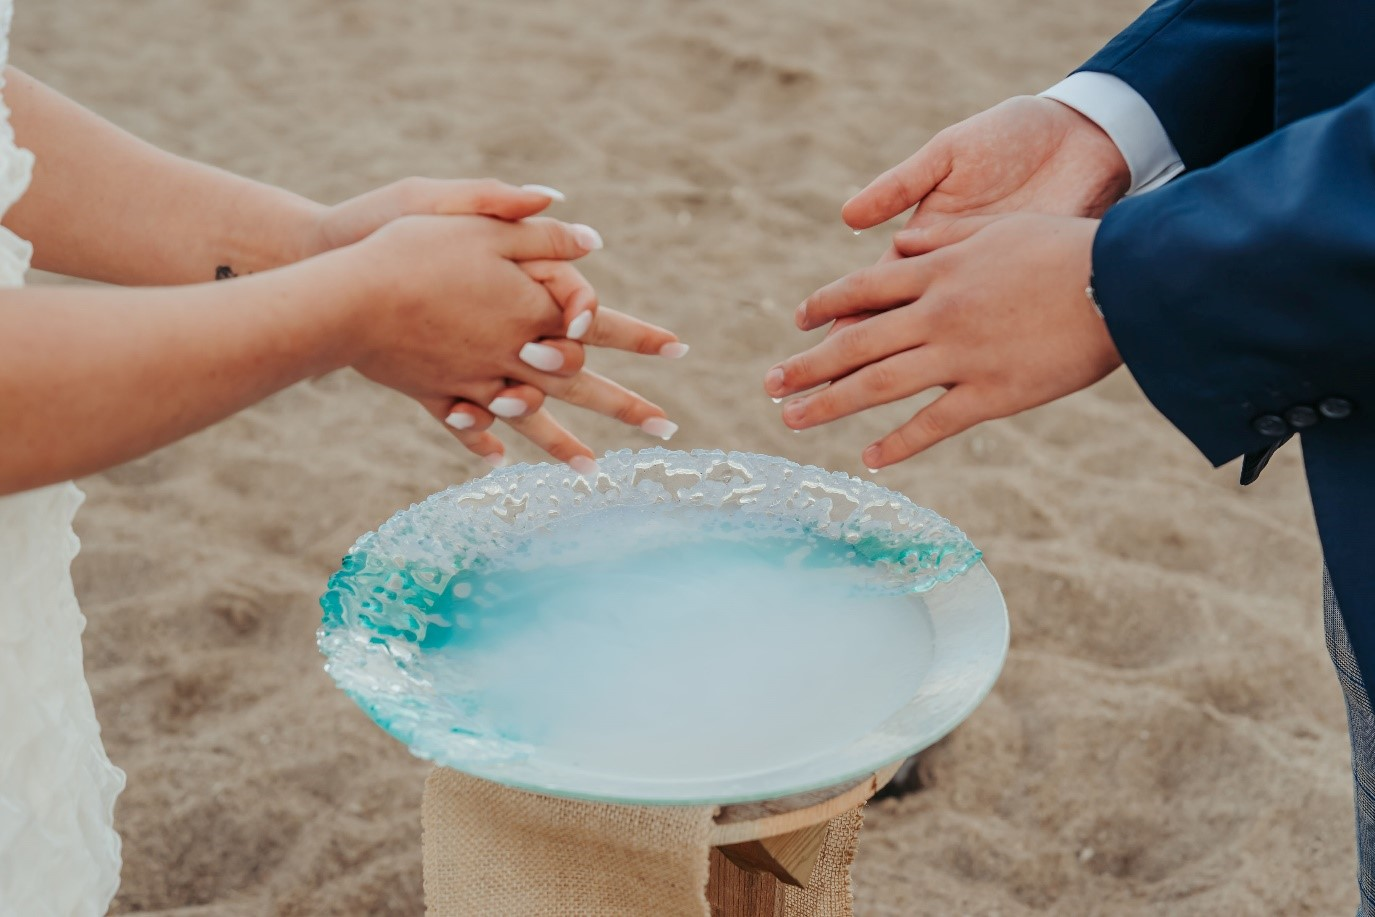 beach elopement - beach wedding - eco friendly wedding -tempest themed wedding - celebrant hand washing ceremony